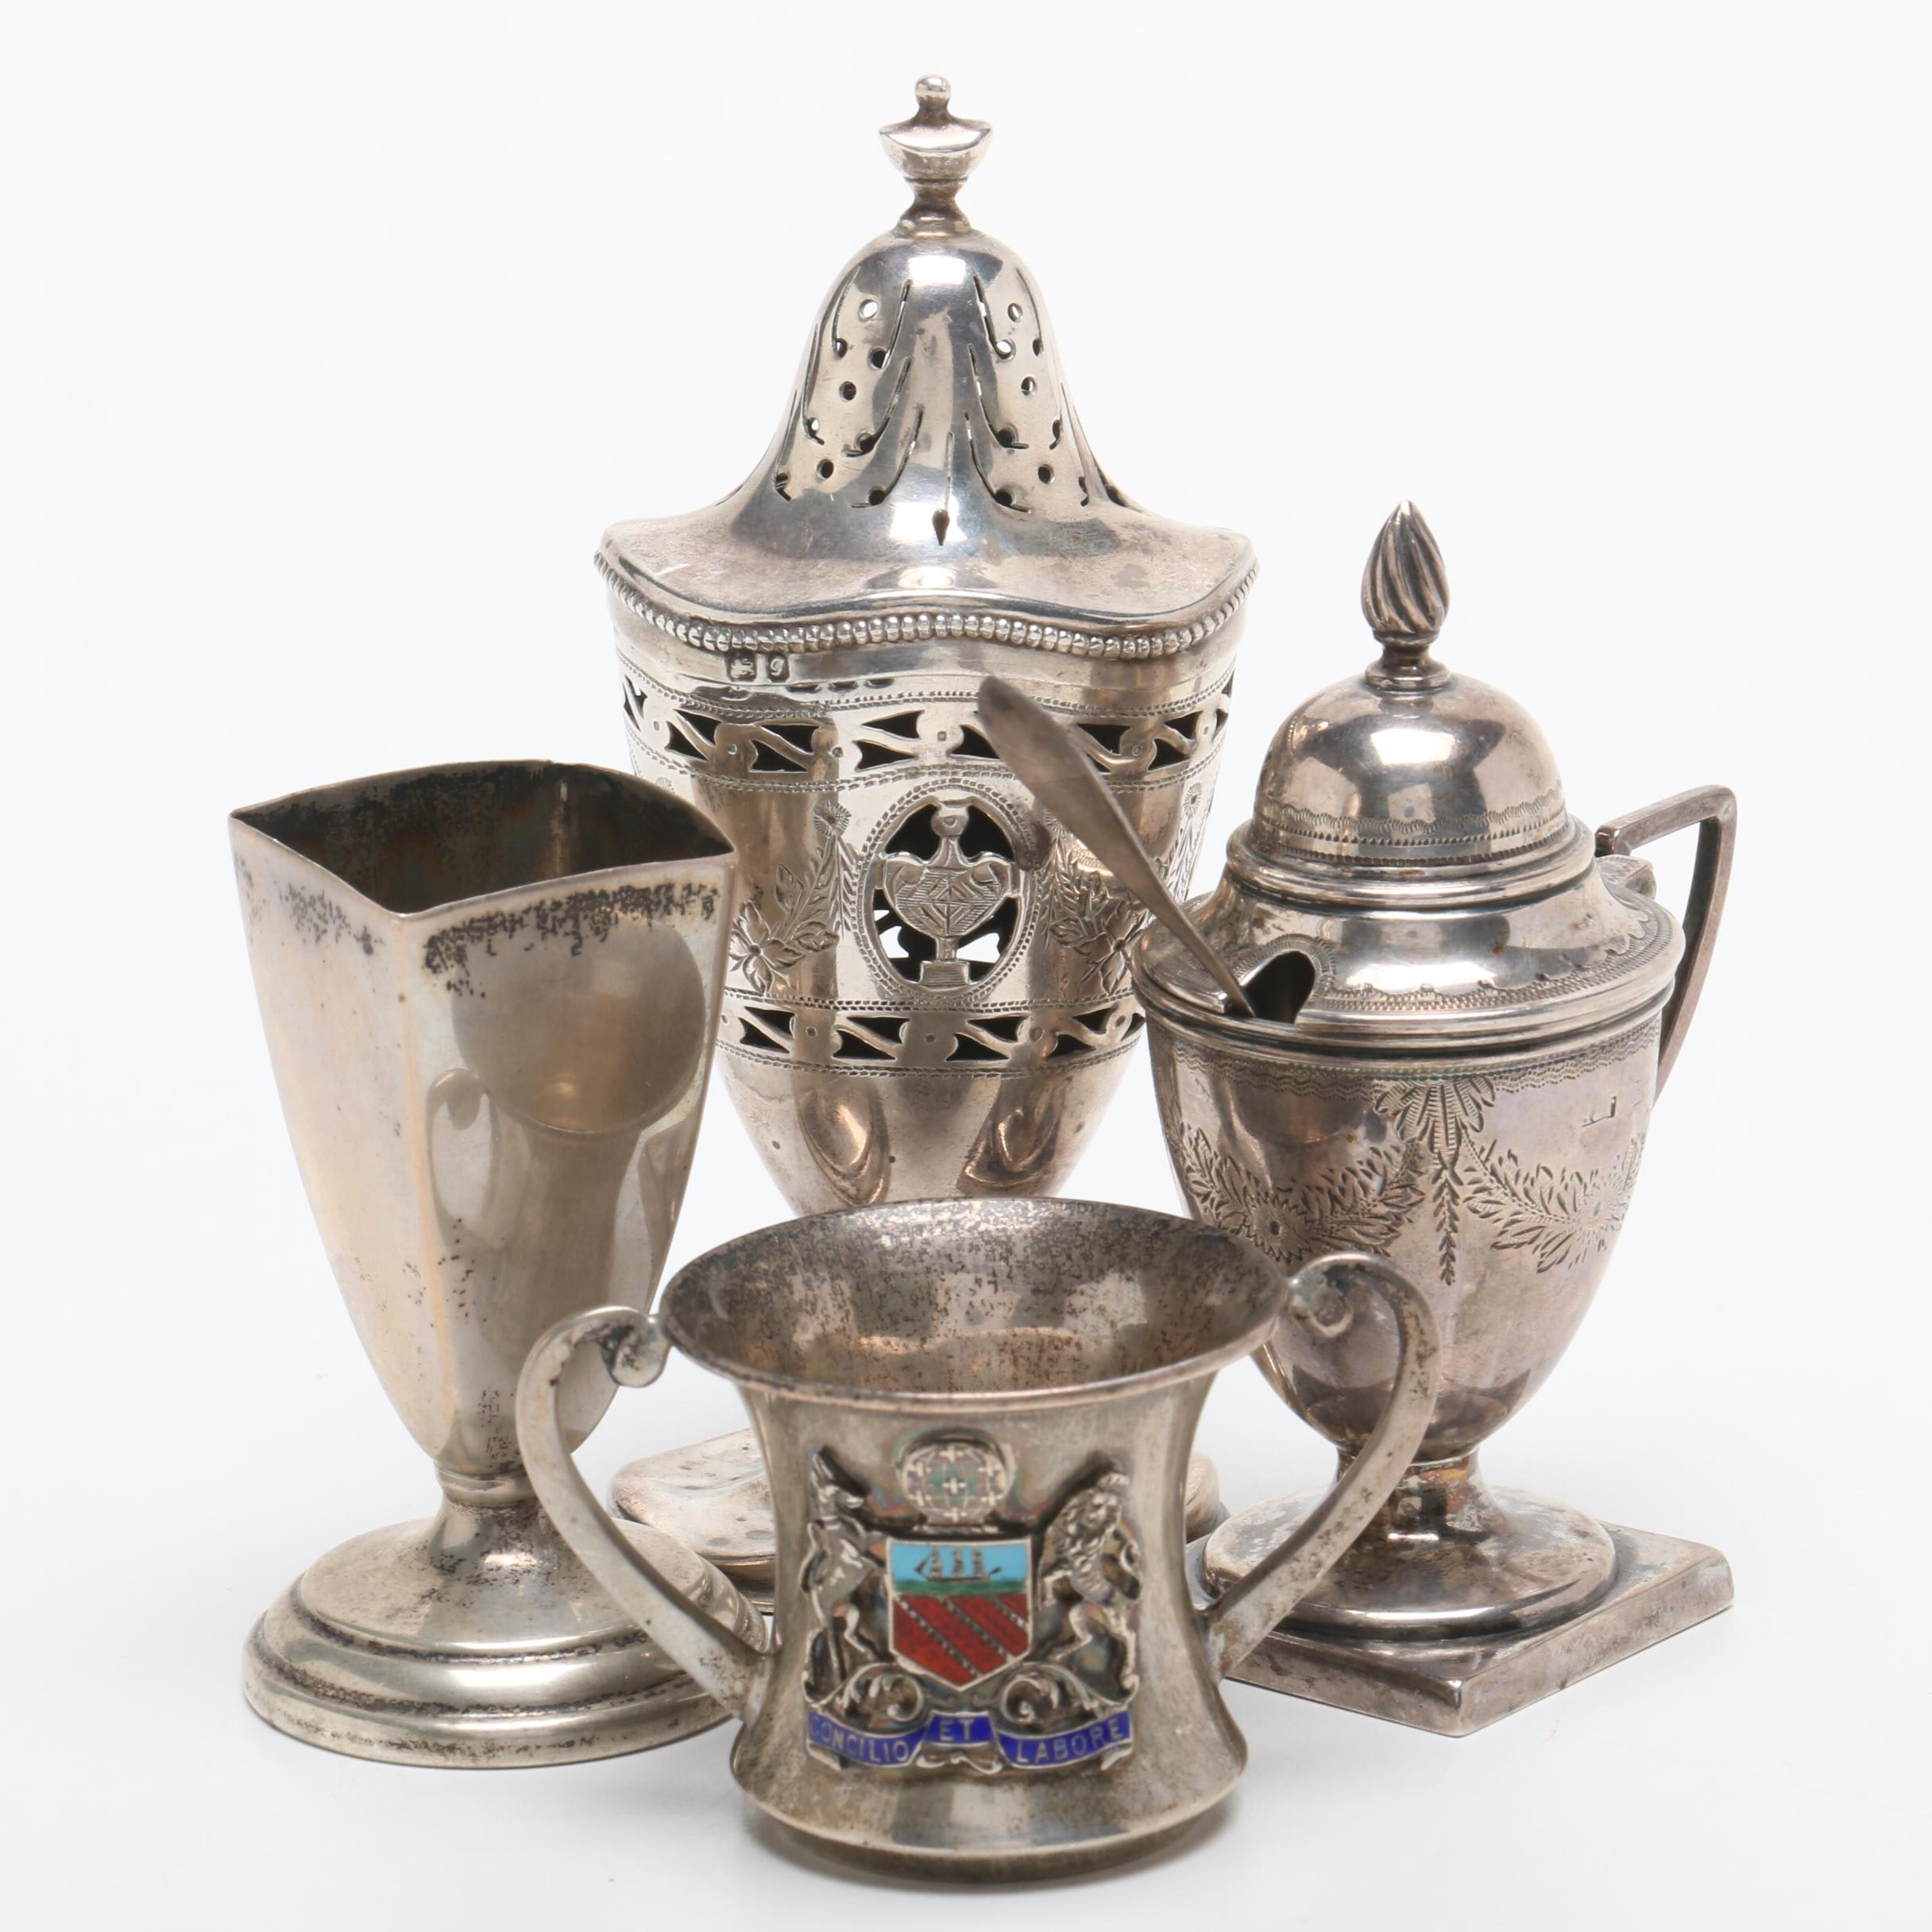 1904 Sterling Silver Levi and Salaman Birmingham Enameled Cup and More